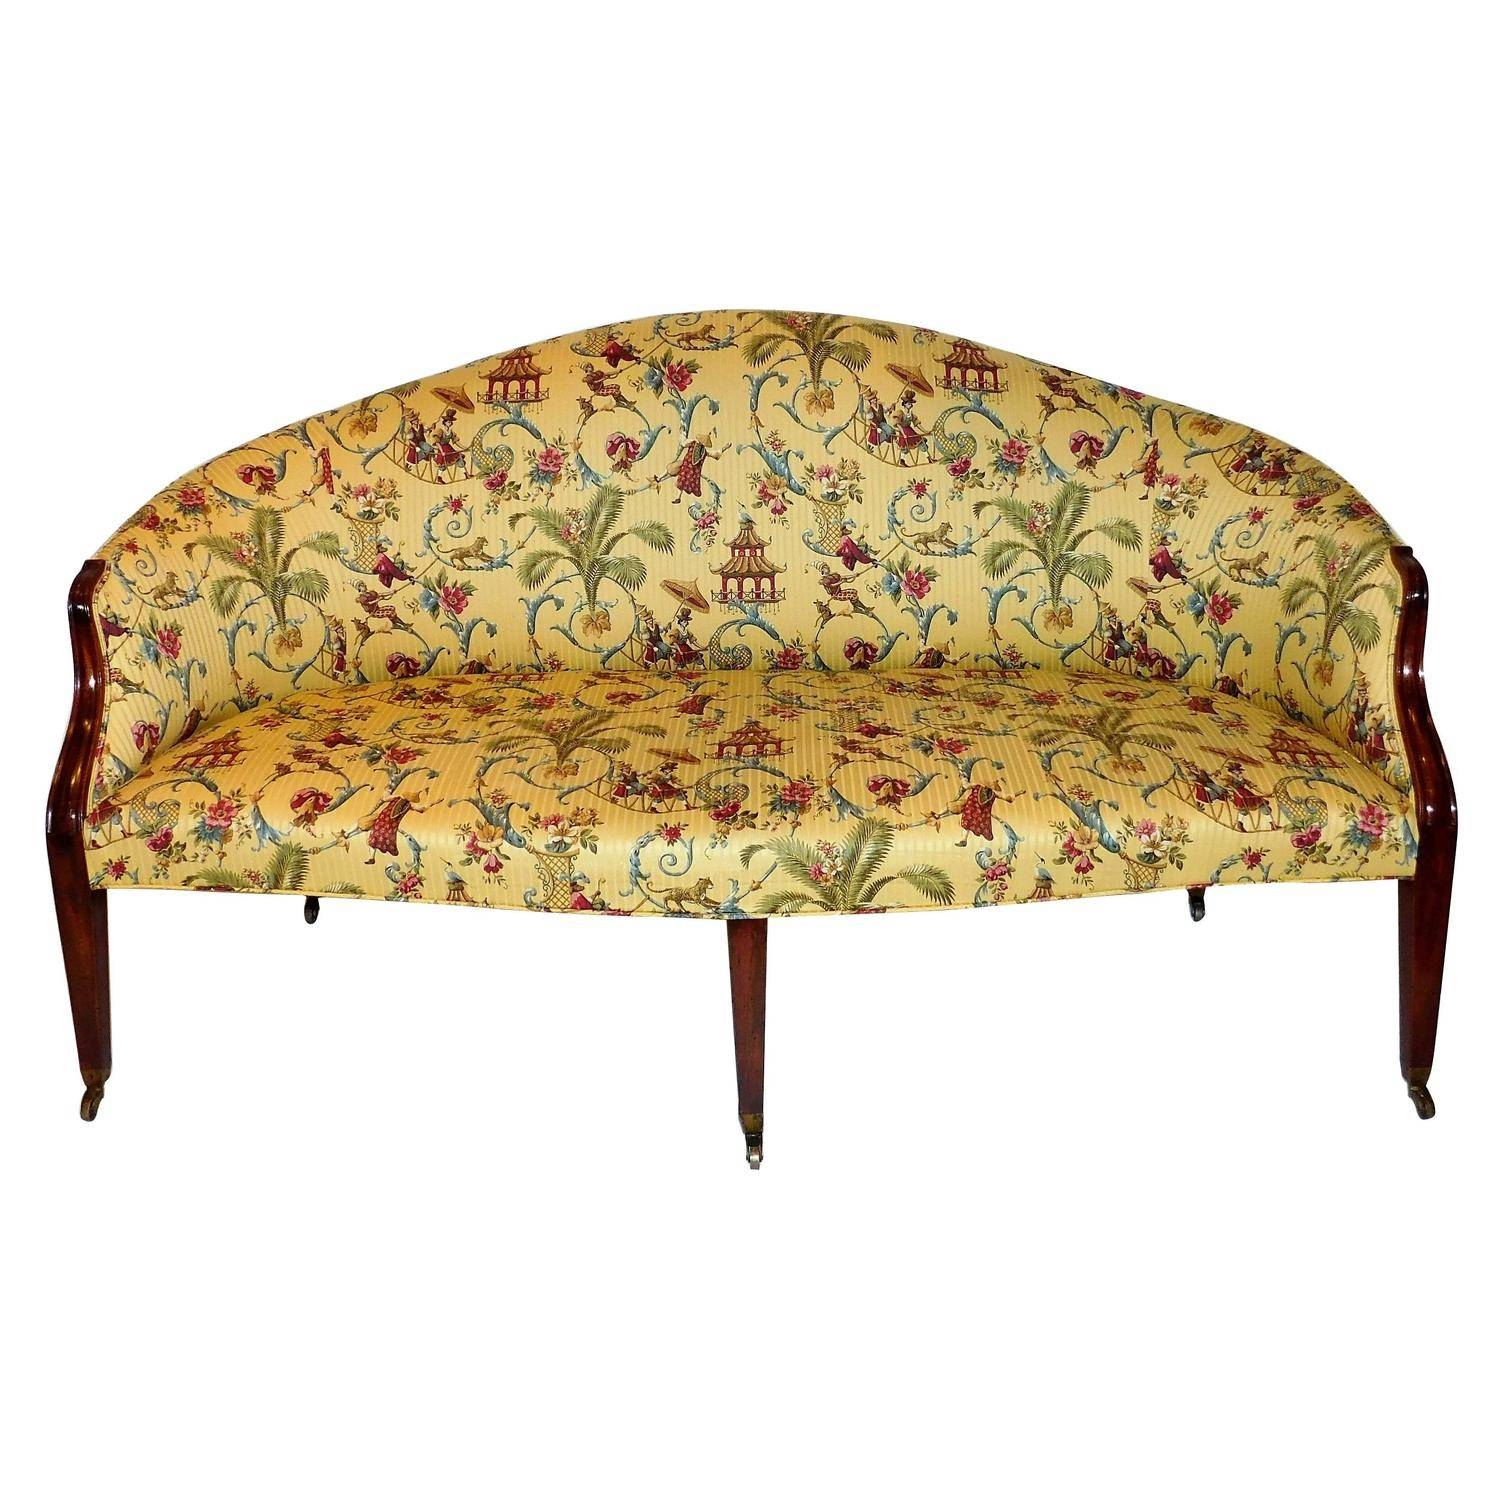 English Sofas - 137 For Sale At 1Stdibs inside Chintz Sofa Beds (Image 12 of 30)